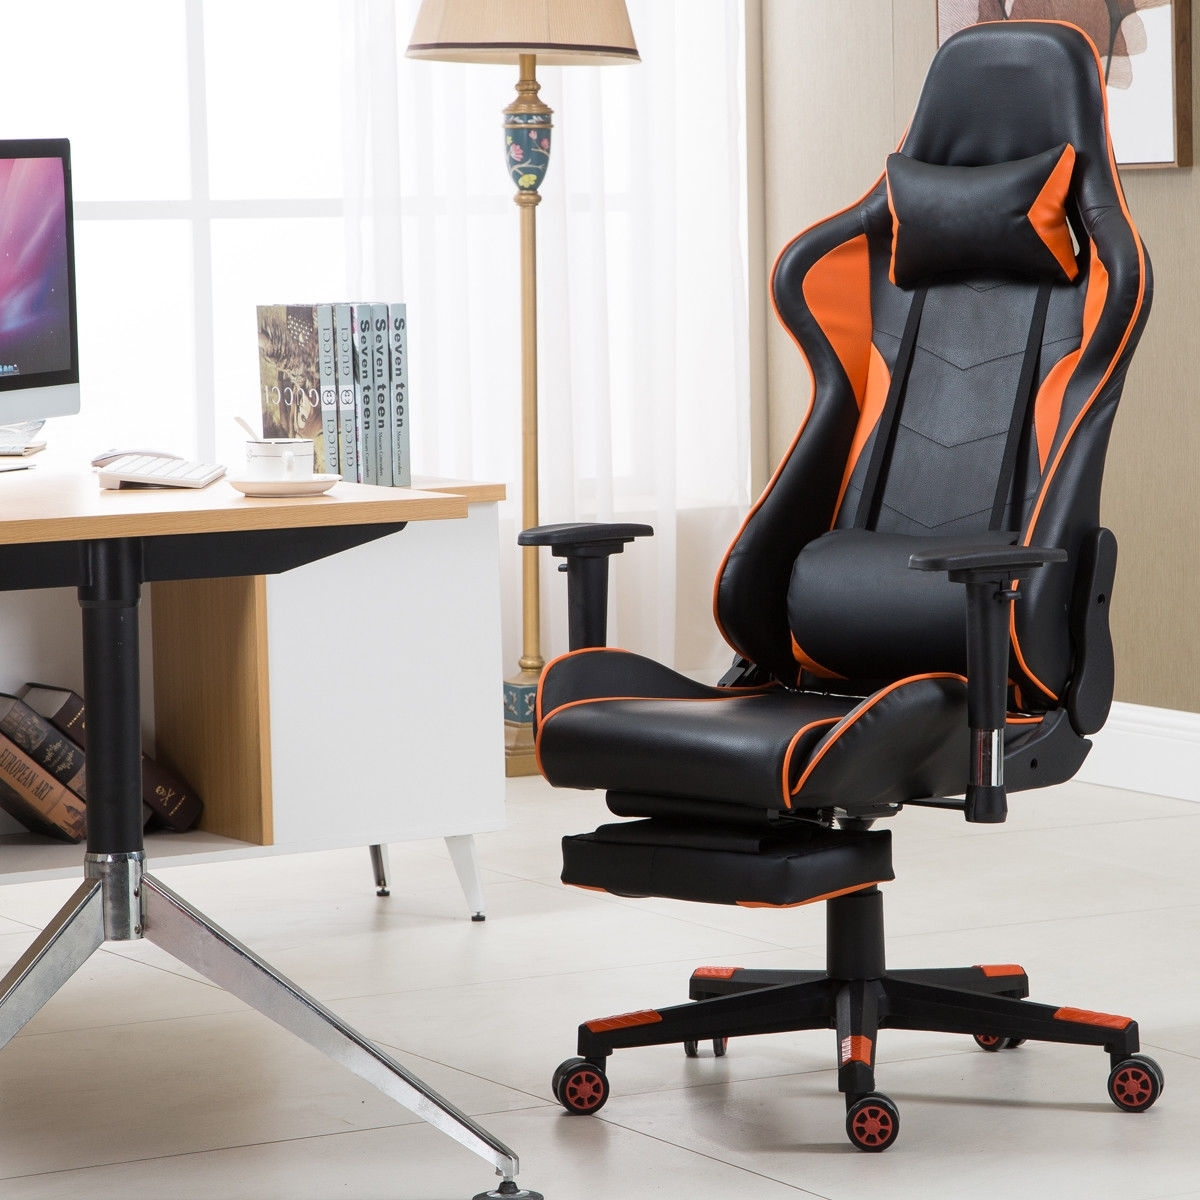 High Back Racing Recliner Gaming Chair with Footrest